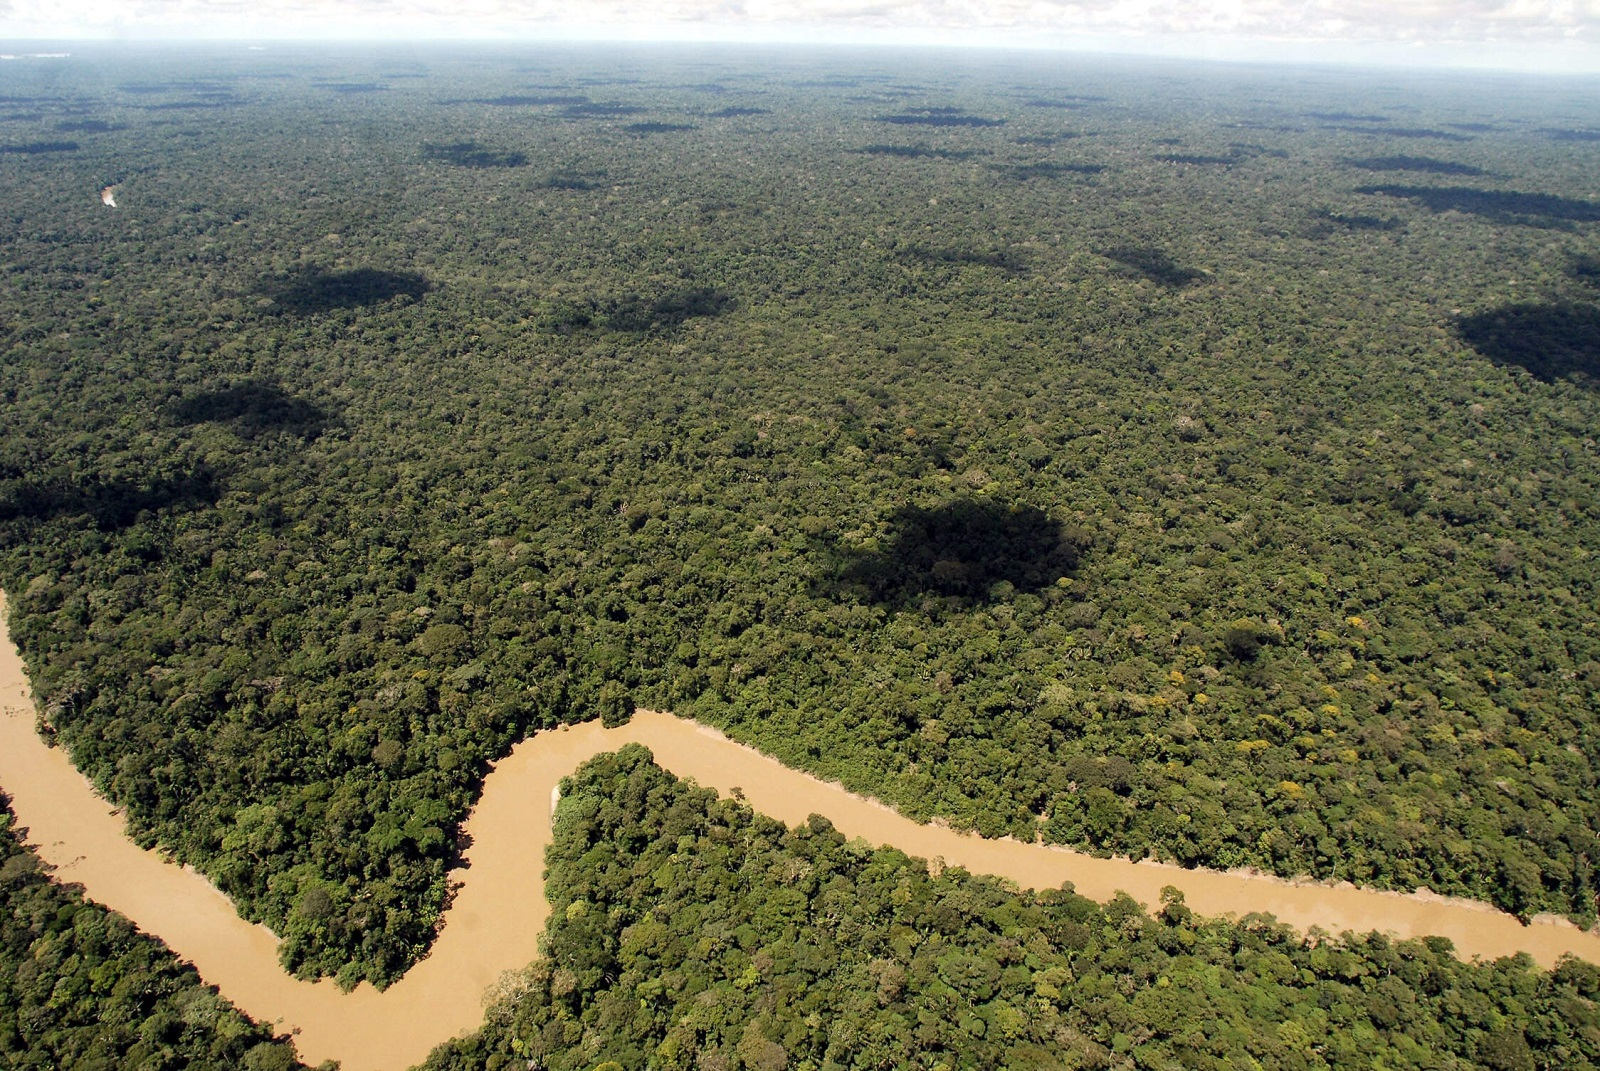 A photograph made available on 04 October 2013 shows the river Tiputini as it passes by the northern border of Yasuni National Park in Ecuador, 16 May 2007. The Ecuadoran Congress approved on 03 October 2013 new drilling for oil development and accompanying roads in the remote northeast section of Yasuni National Park, a 900,000 hectare Amazon forest which is considered one of the most biodiverse areas in the world.